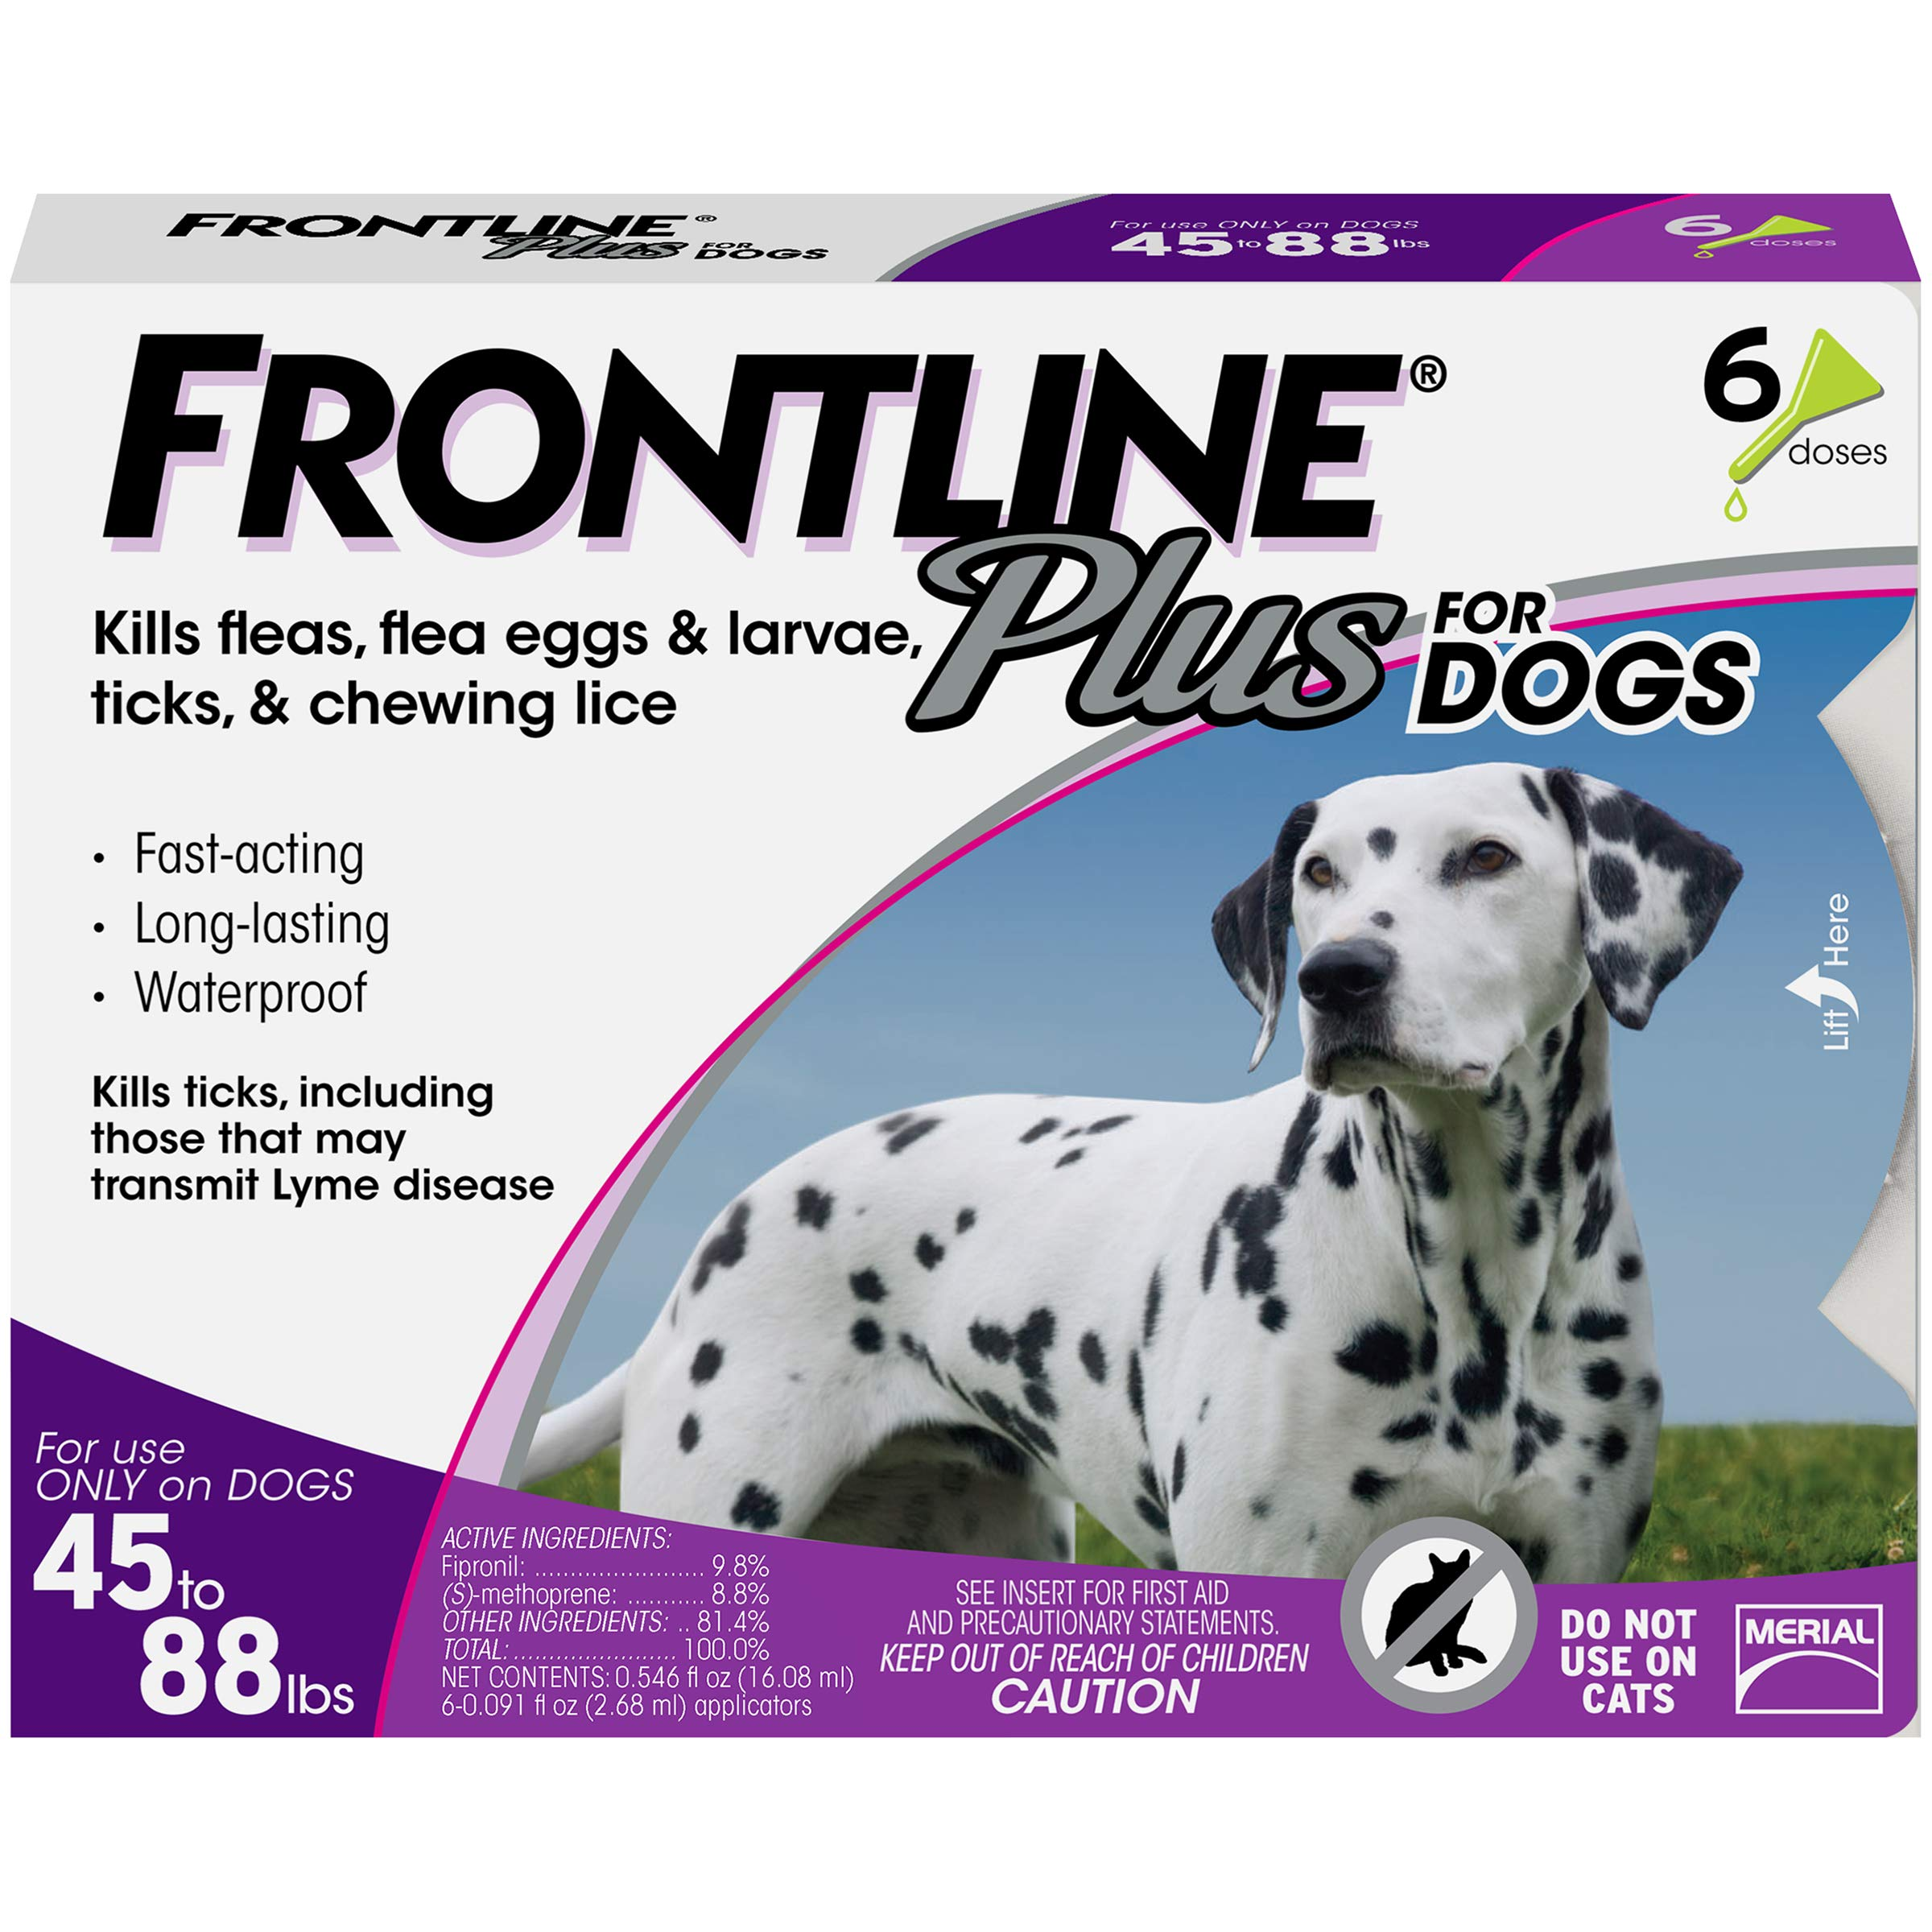 Frontline Plus for Dogs 4588 lbs Purple, 6 Month